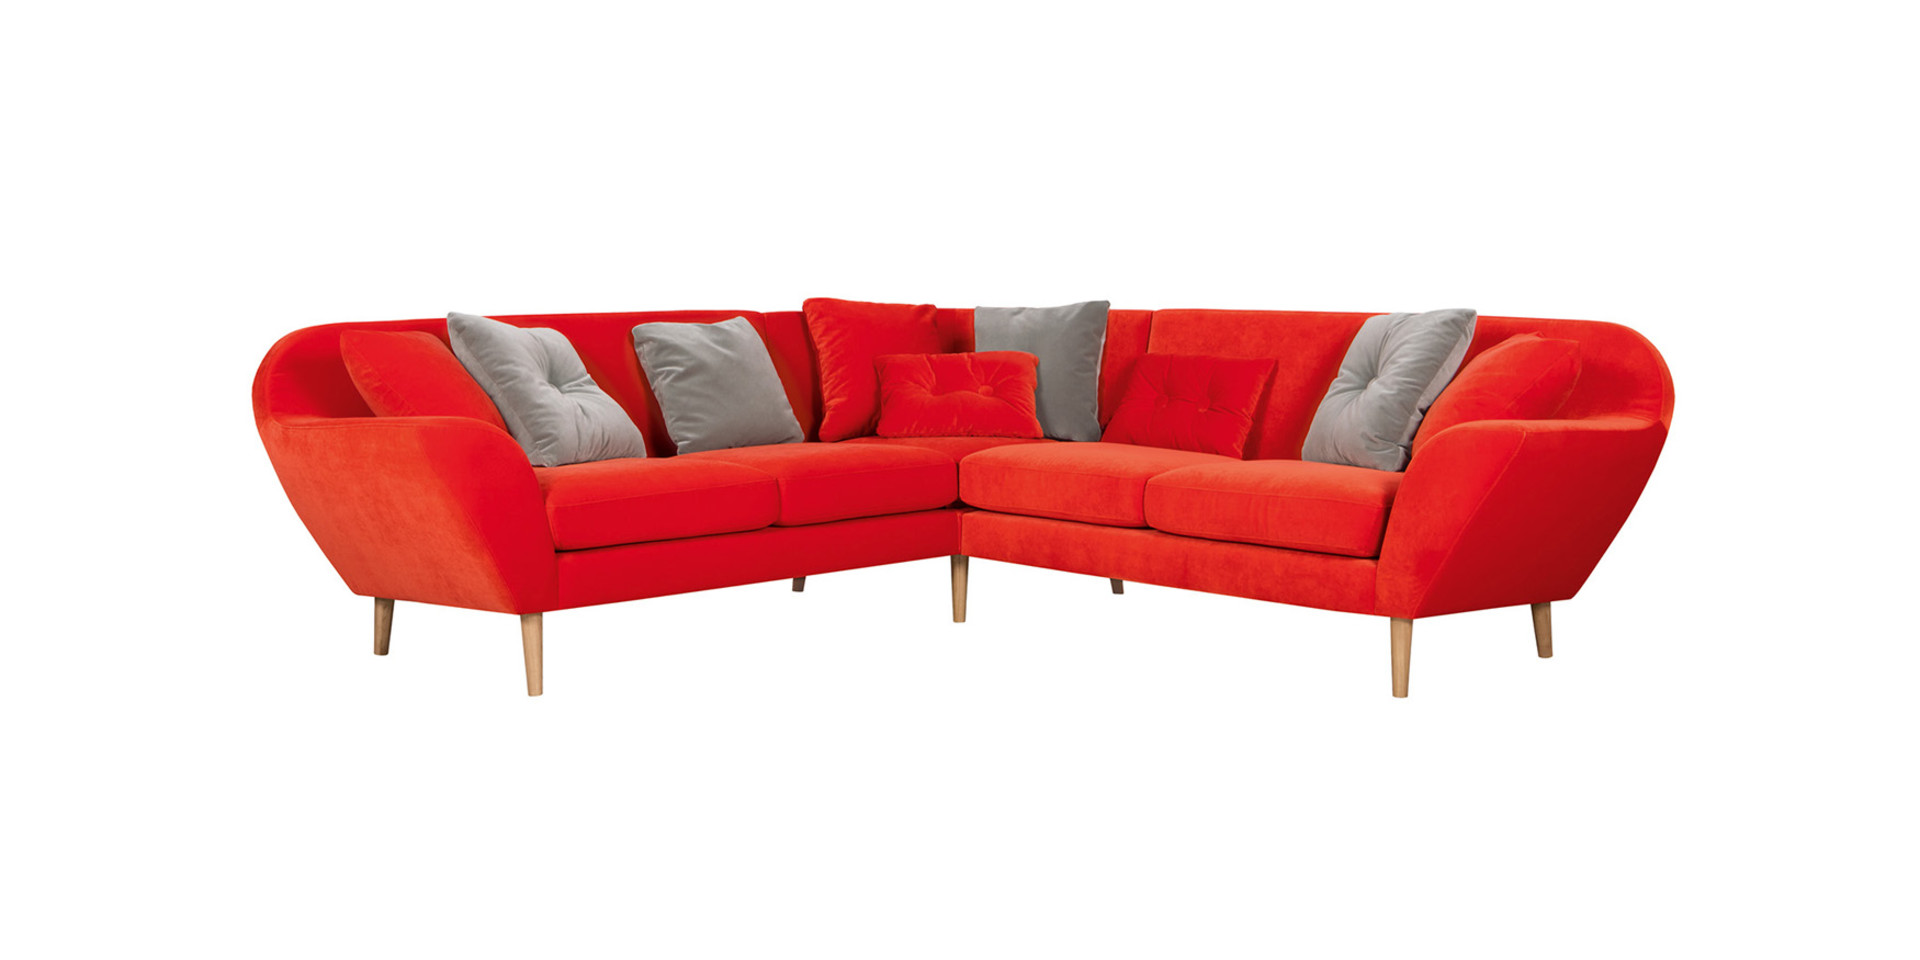 sits-poppy-angle-set5_classic_velvet9_orange_2